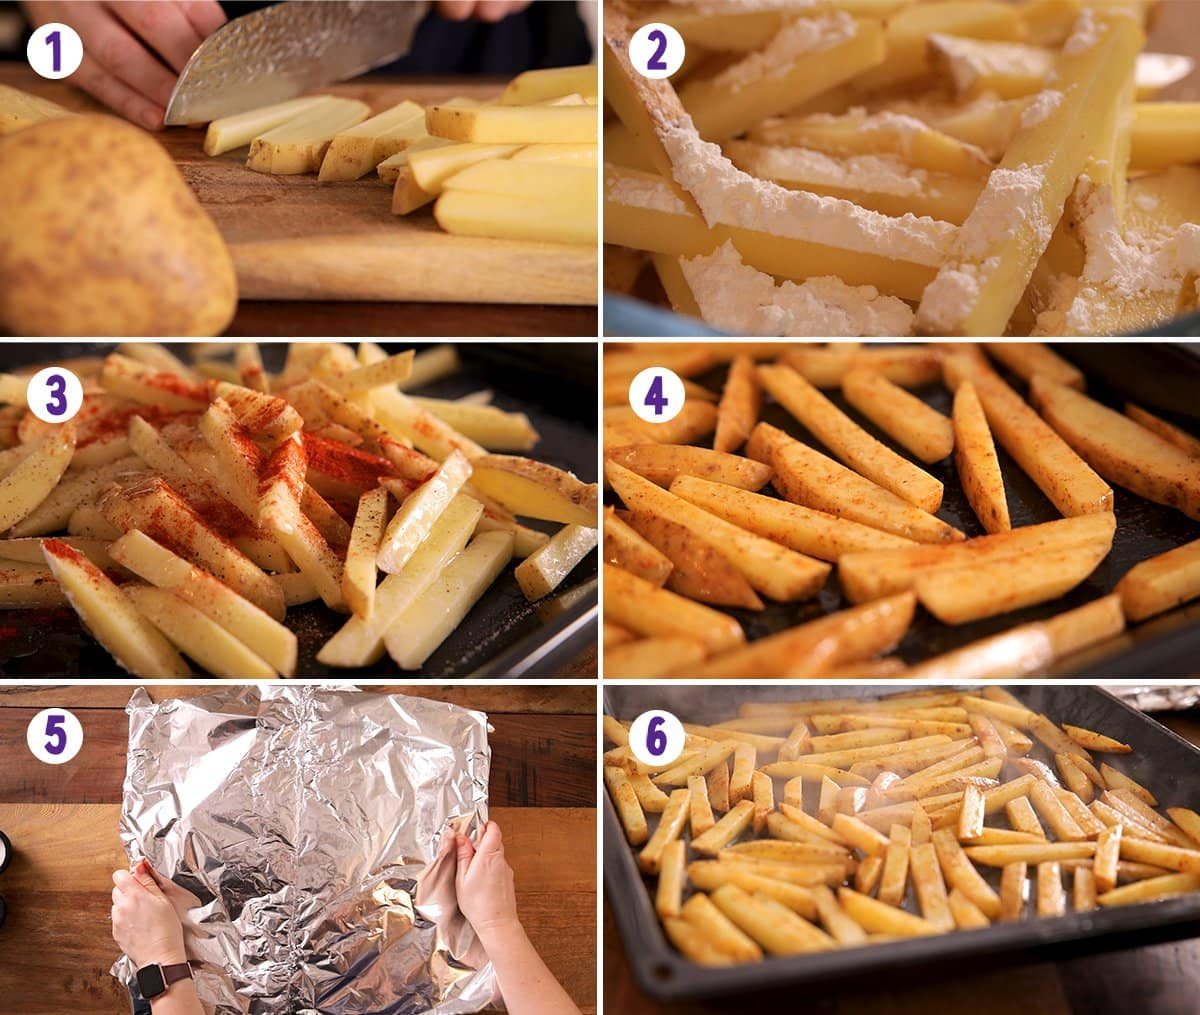 The process of making oven baked chips